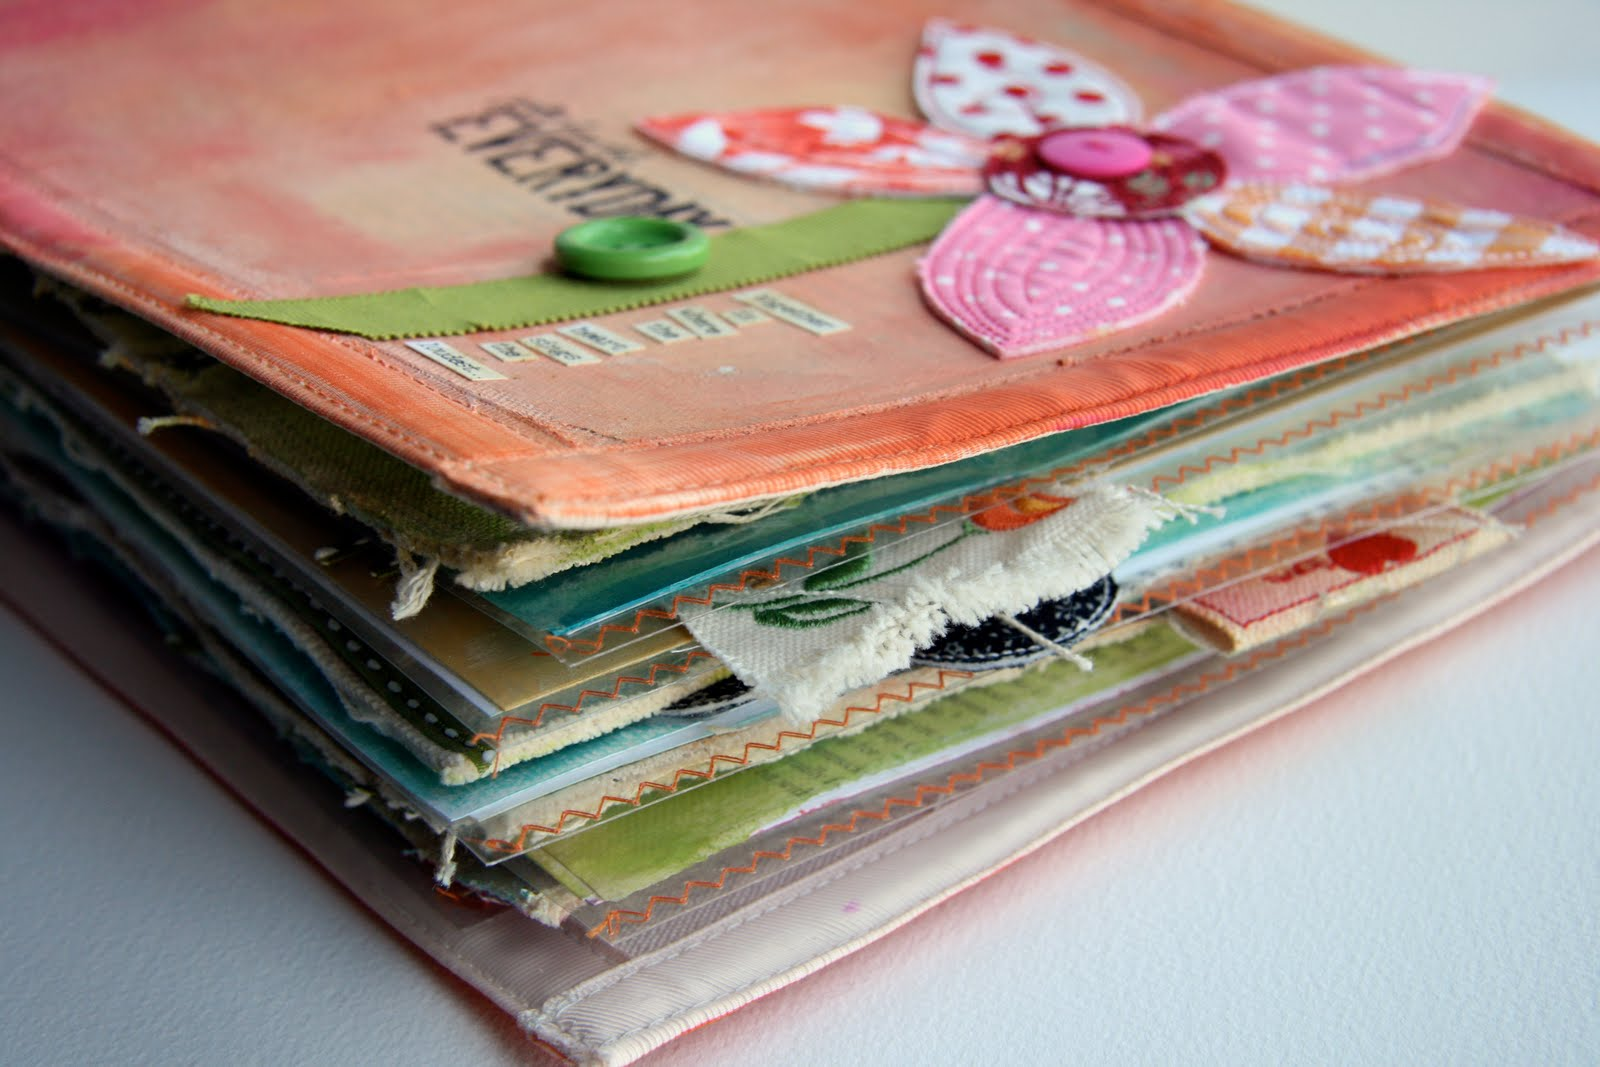 fabric+scrapbooking+cover3.jpg